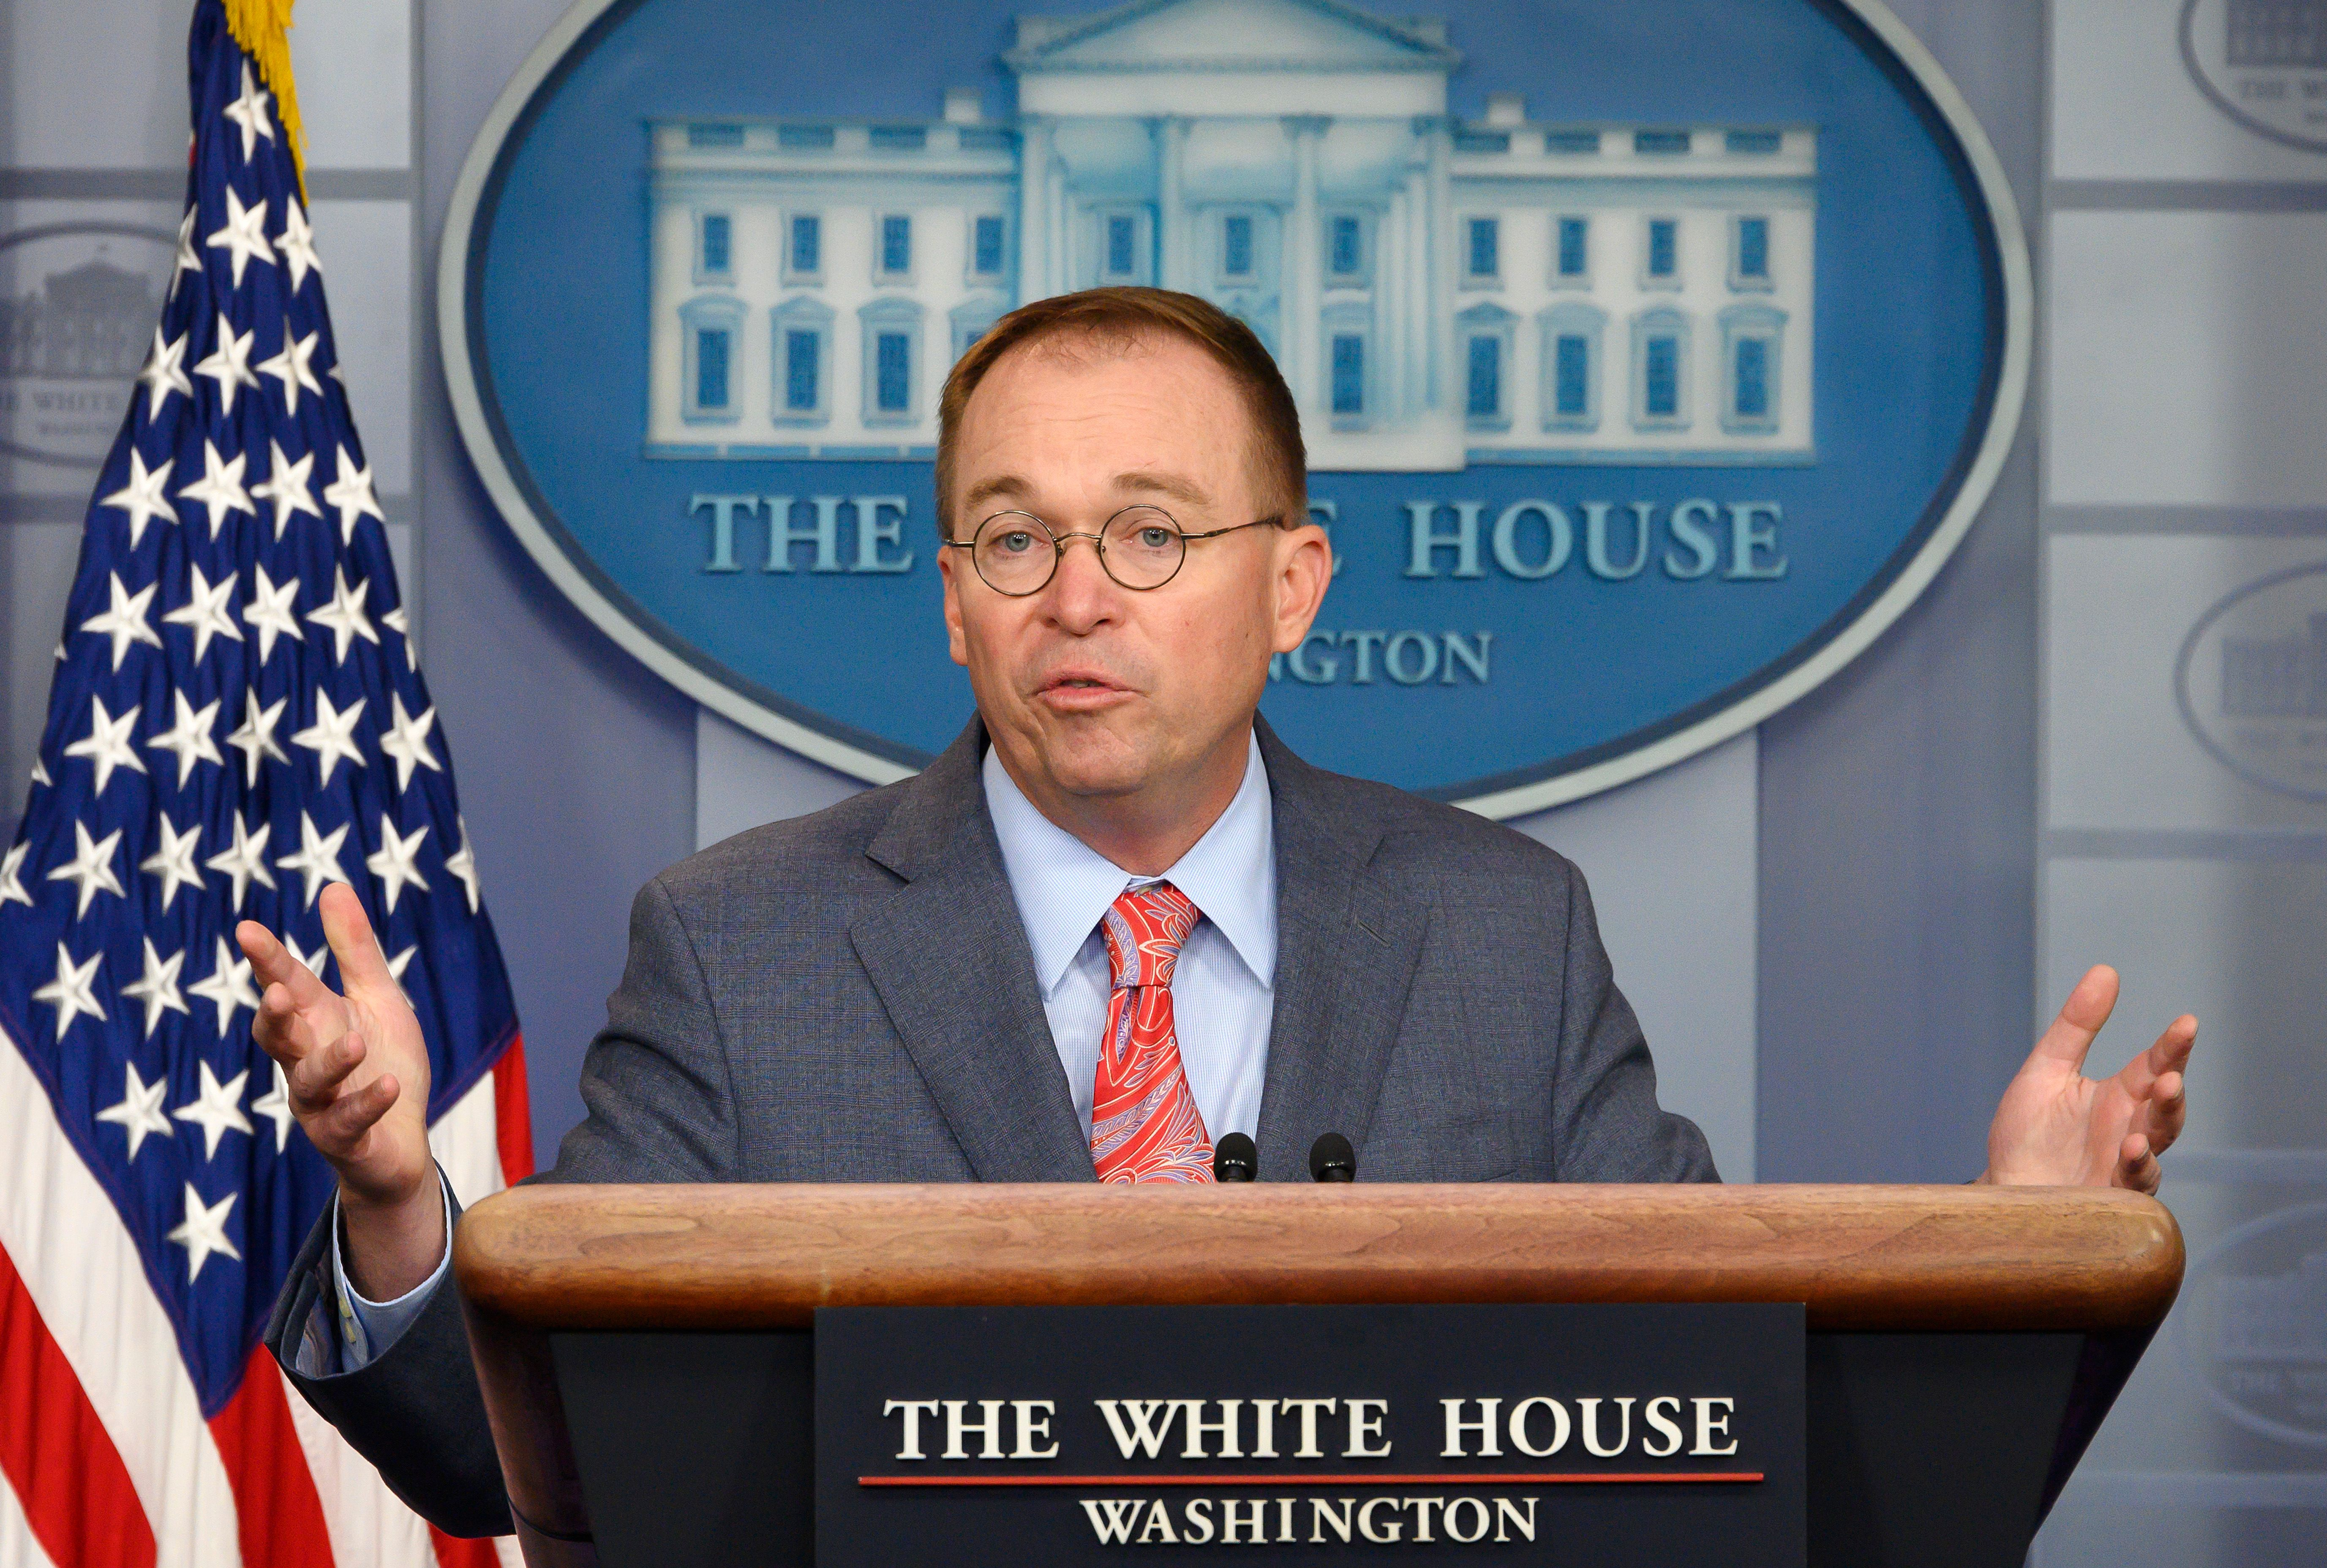 White House Acting Chief of Staff Mick Mulvaney speaks during a press briefing at the White House in Washington, DC, on October 17, 2019. (Photo: Jim Watson/AFP via Getty Images)